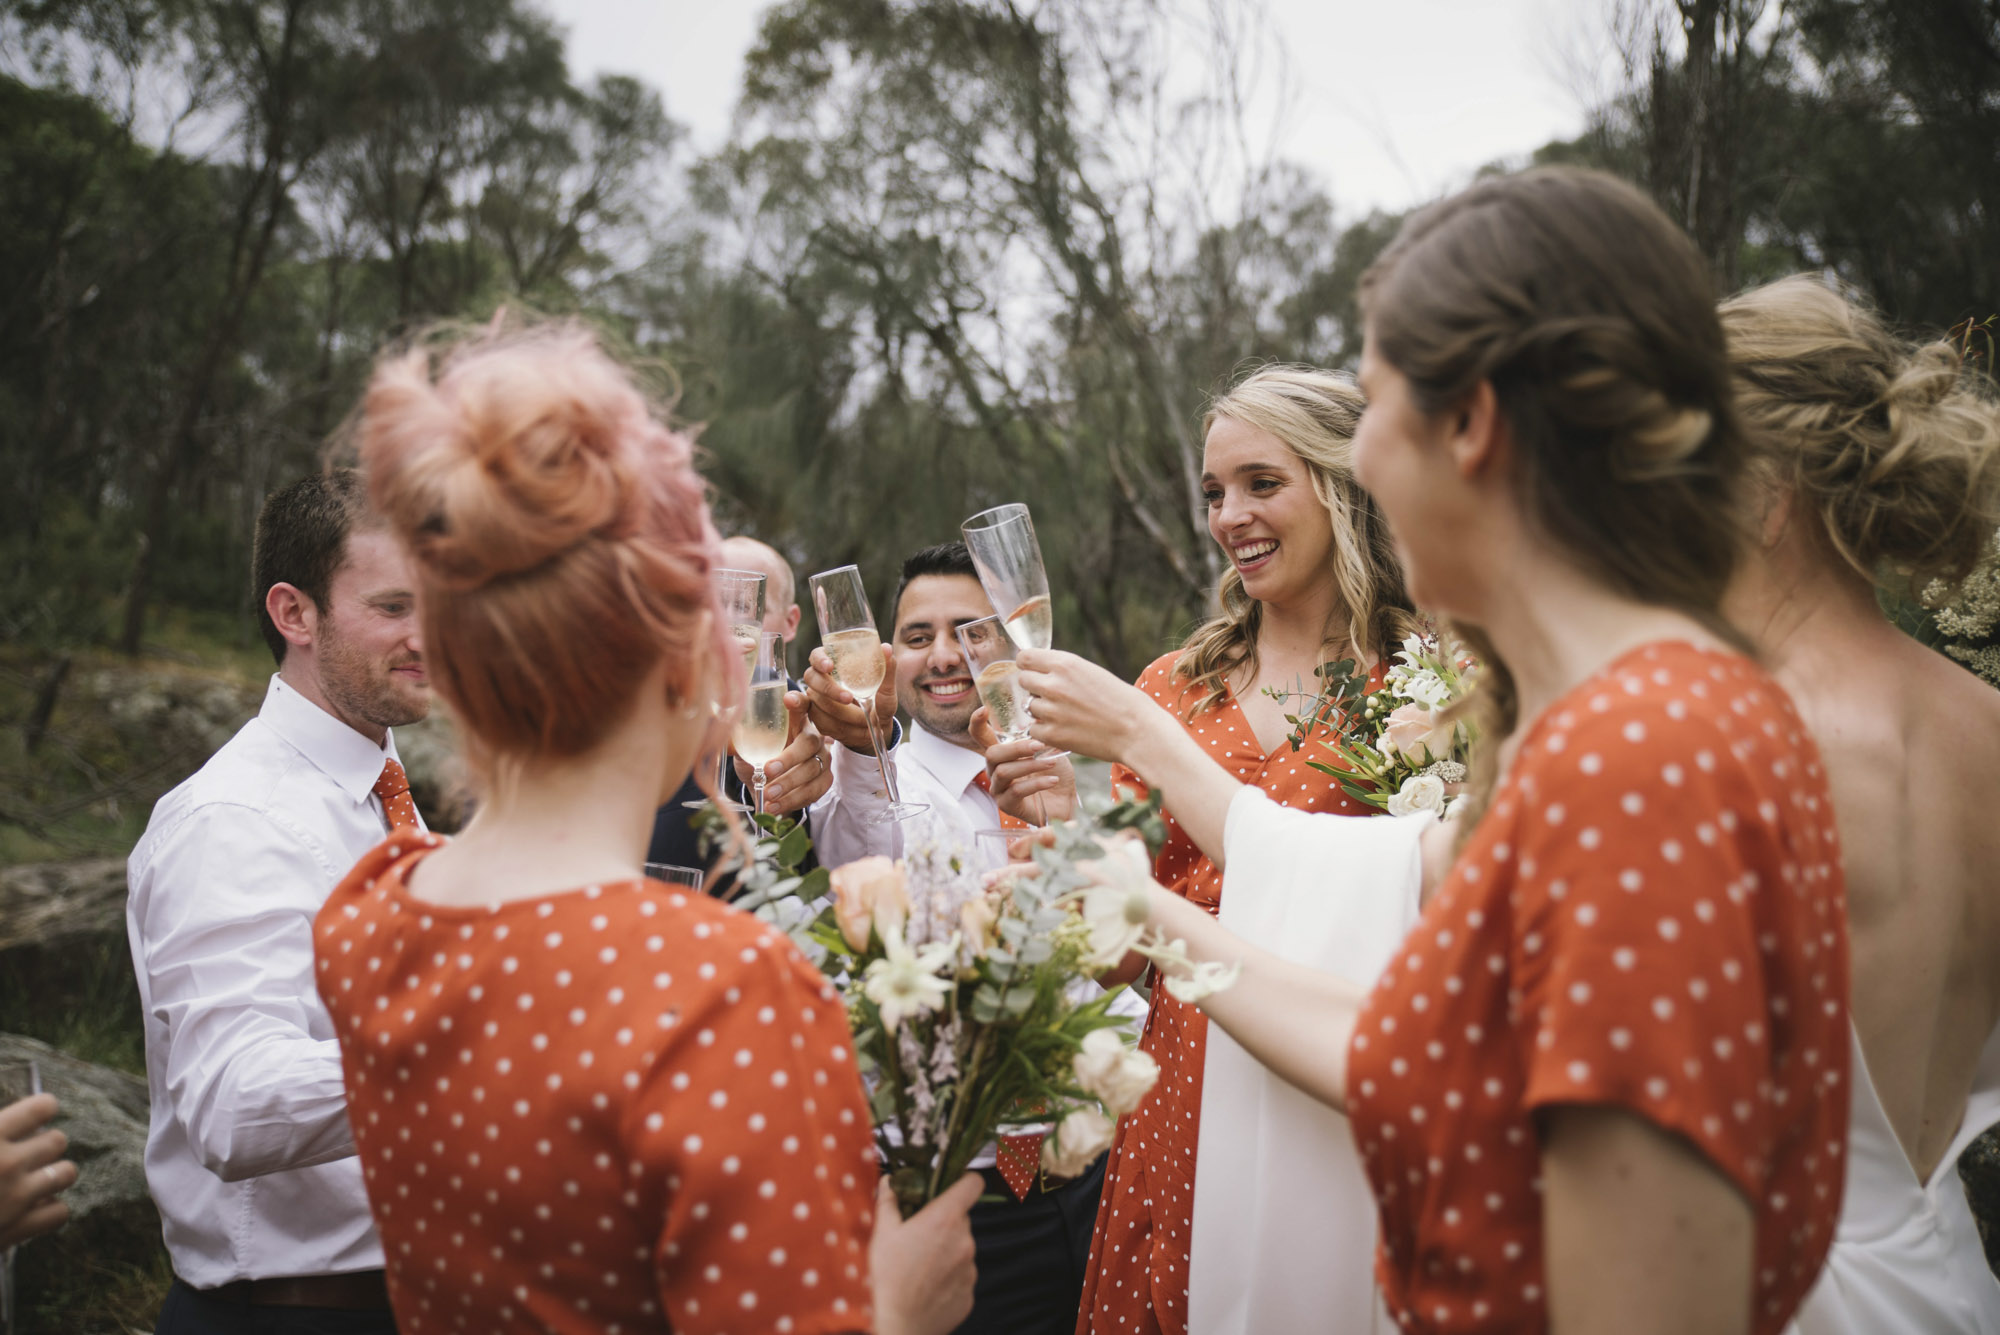 Angie-Roe-Photography-Wedding-Perth-Northam-Wheatbelt-Country-Rural (14).jpg